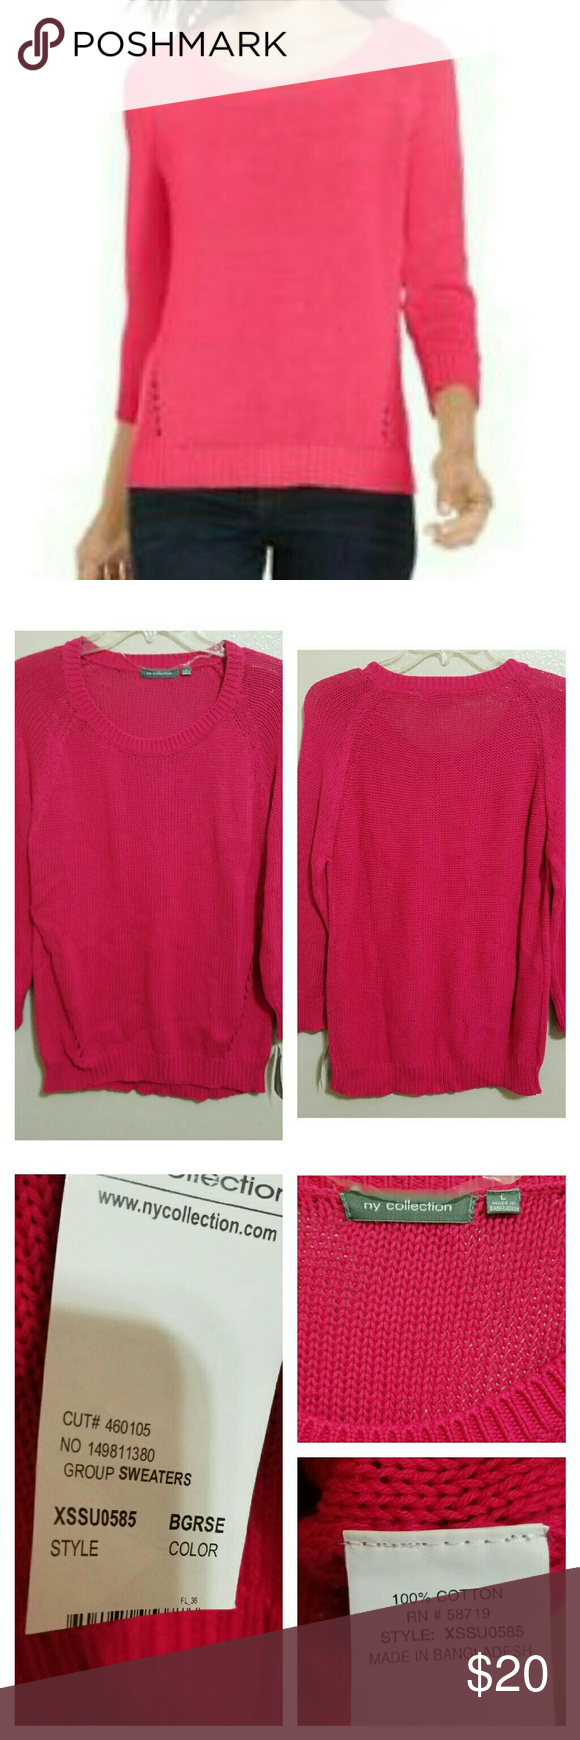 ❎FINAL PRICE❎ Hot Pink NY Collection Sweater NWT | Wardrobes ...